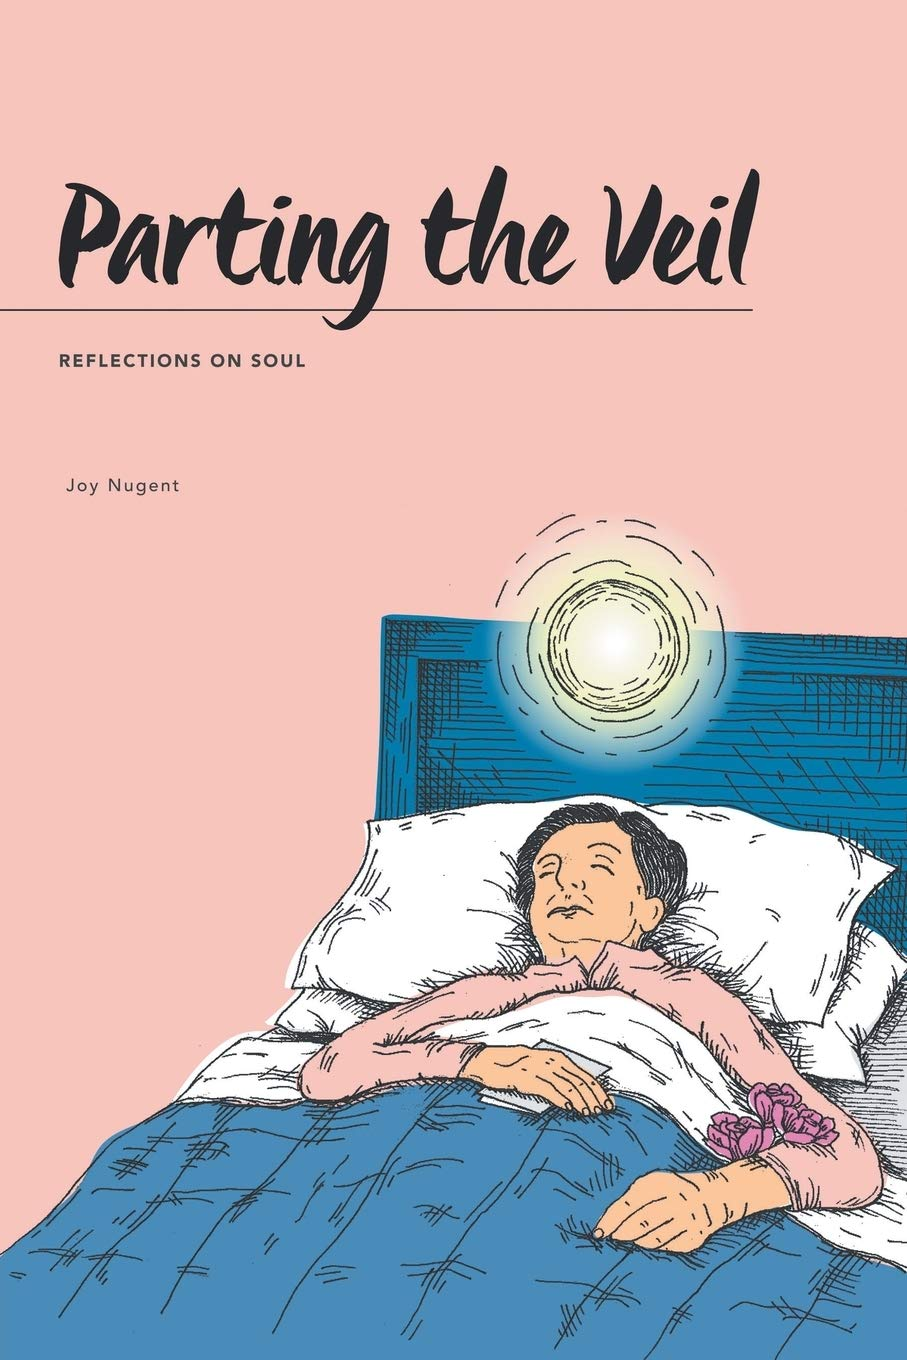 Parting the Veil - A Virtual Reality Experience